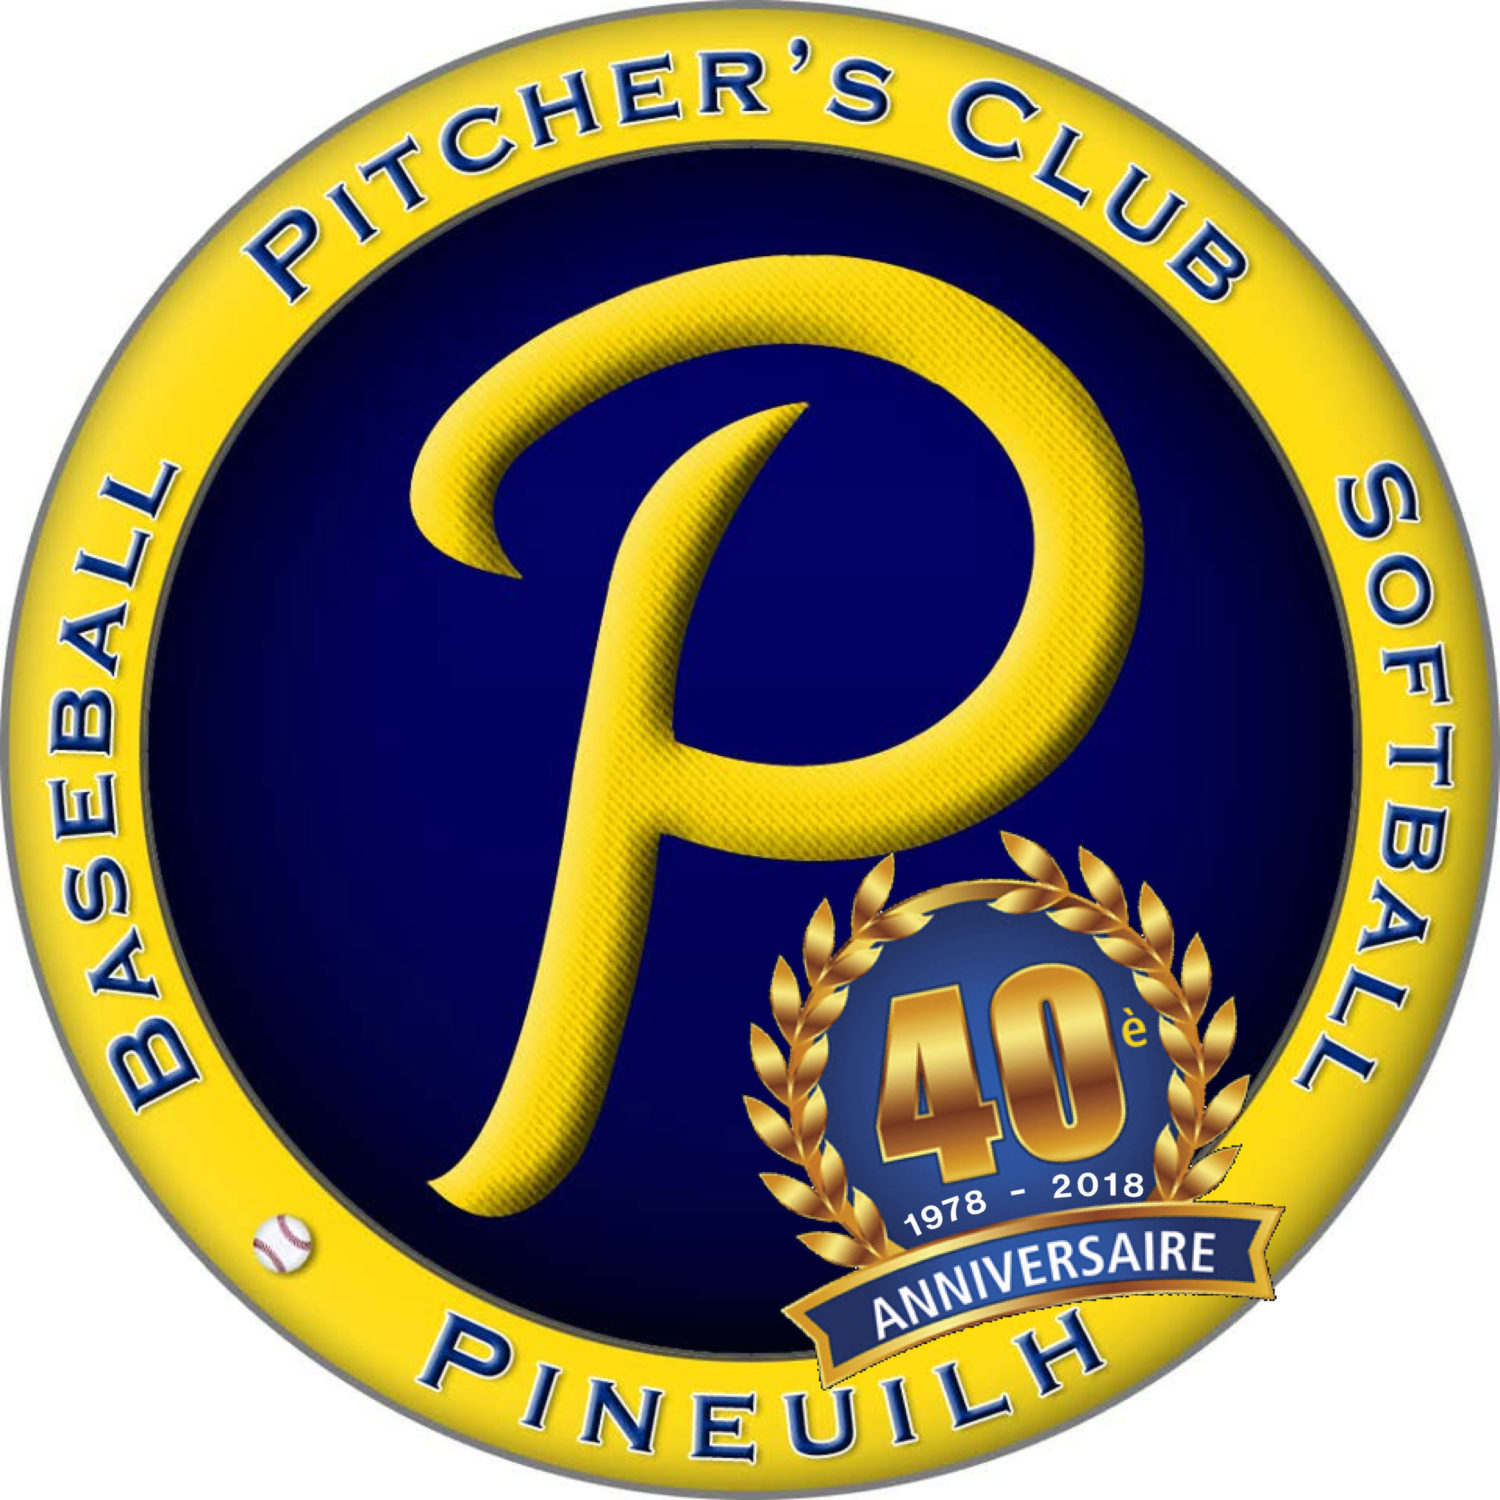 Pitchers Baseball Club